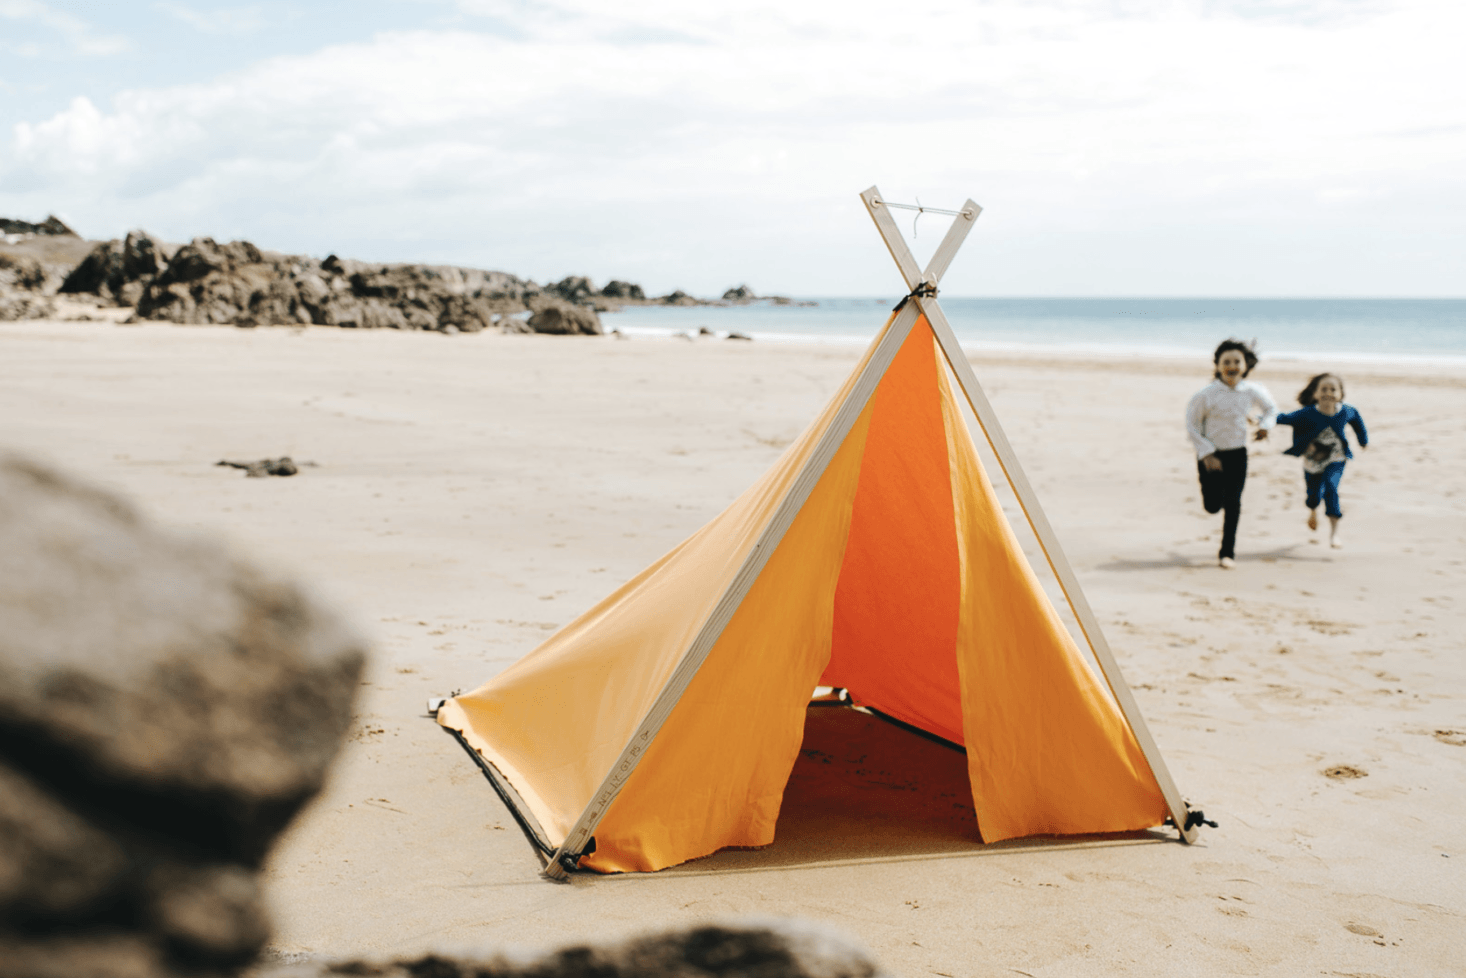 Île de Ré has a traditional tent shape and is the fastest style to assemble, in less than one minute. It&#8